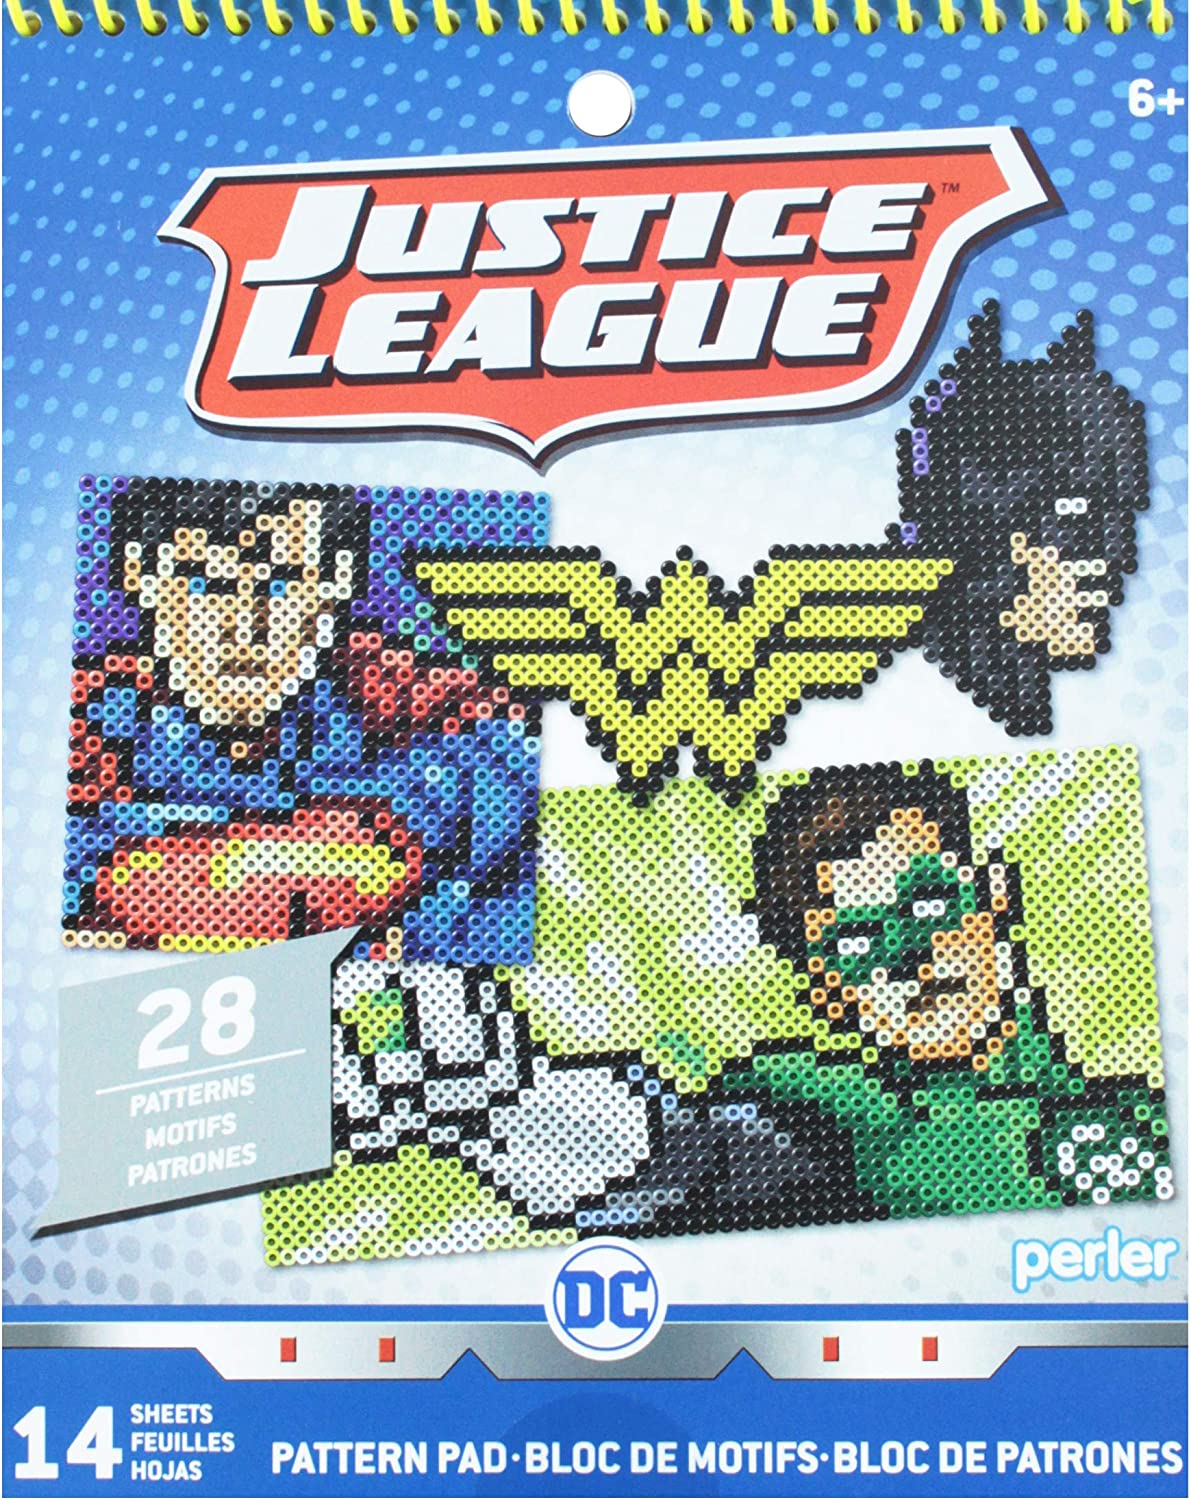 Perler Beads DC Justice League Fuse Bead Pattern Pad 28 Patterns